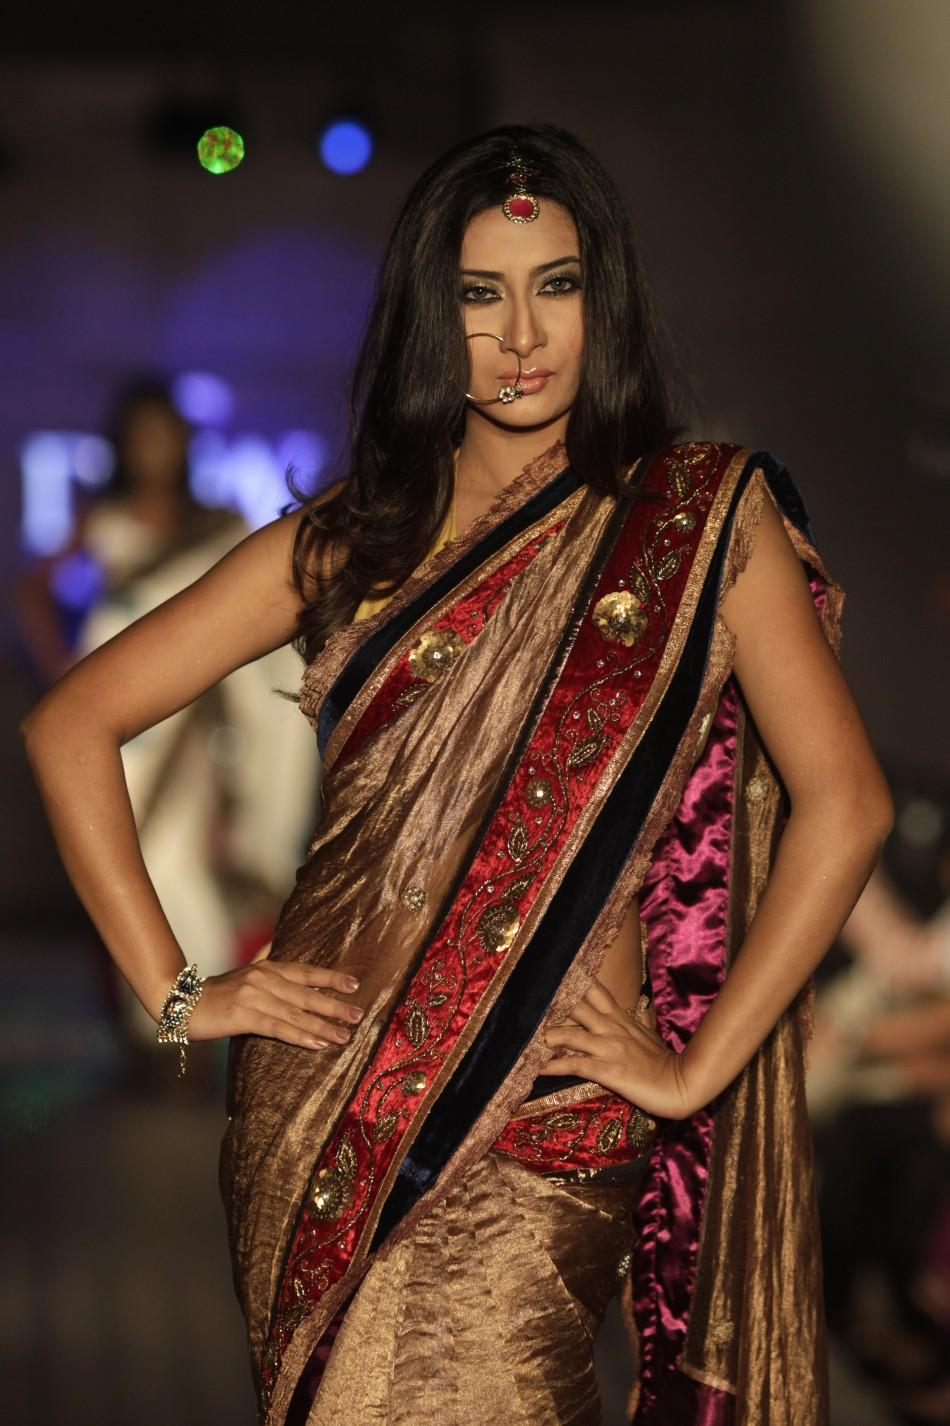 Dhaka Fasion Week (7 of 8)